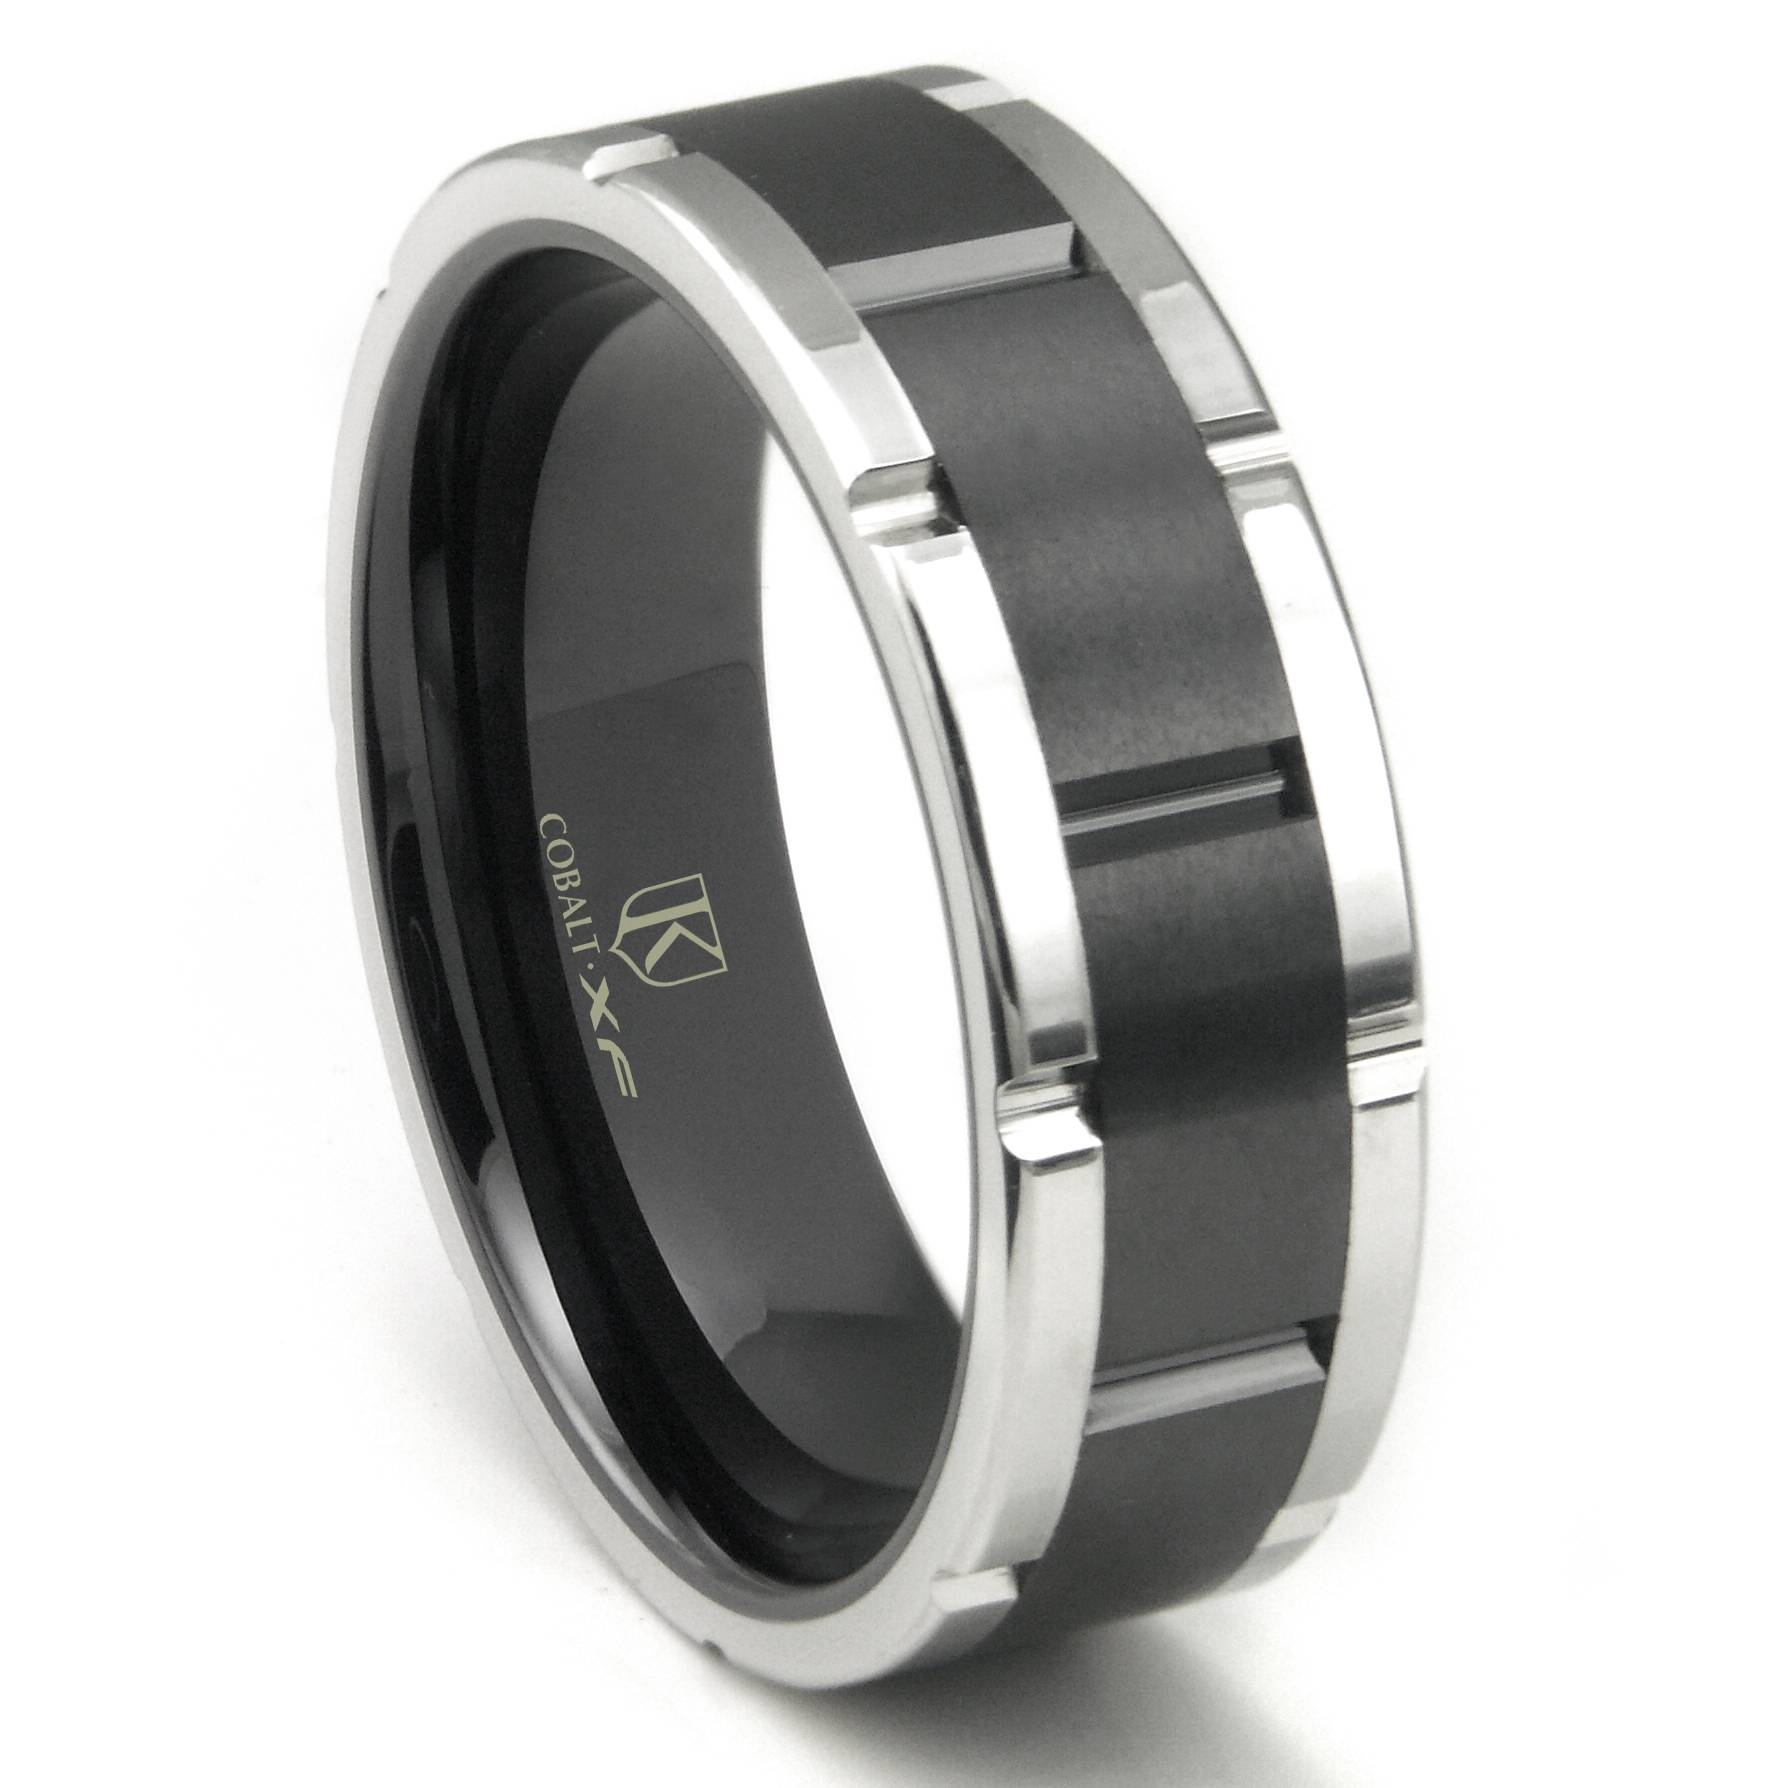 Cobalt Xf Chrome 8mm Two Tone Matte Finish Center Wedding Band Ring Throughout Matte Black Mens Wedding Bands (View 4 of 15)